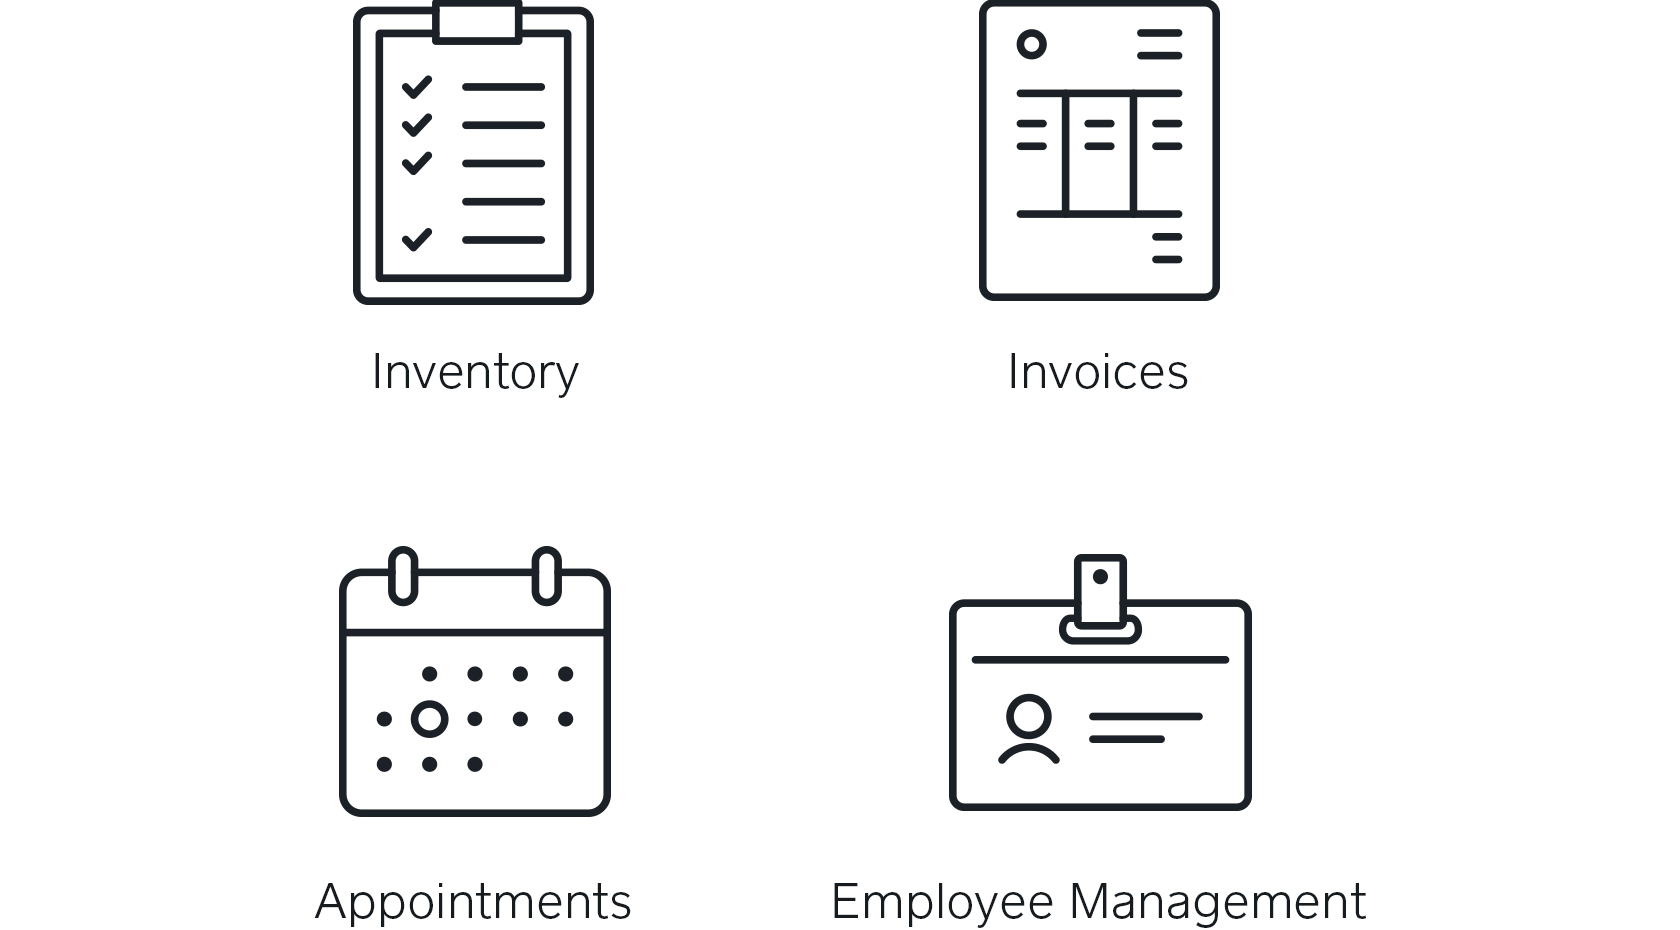 Icons for Square Inventory, Invoices, Appointments, and Employee Management